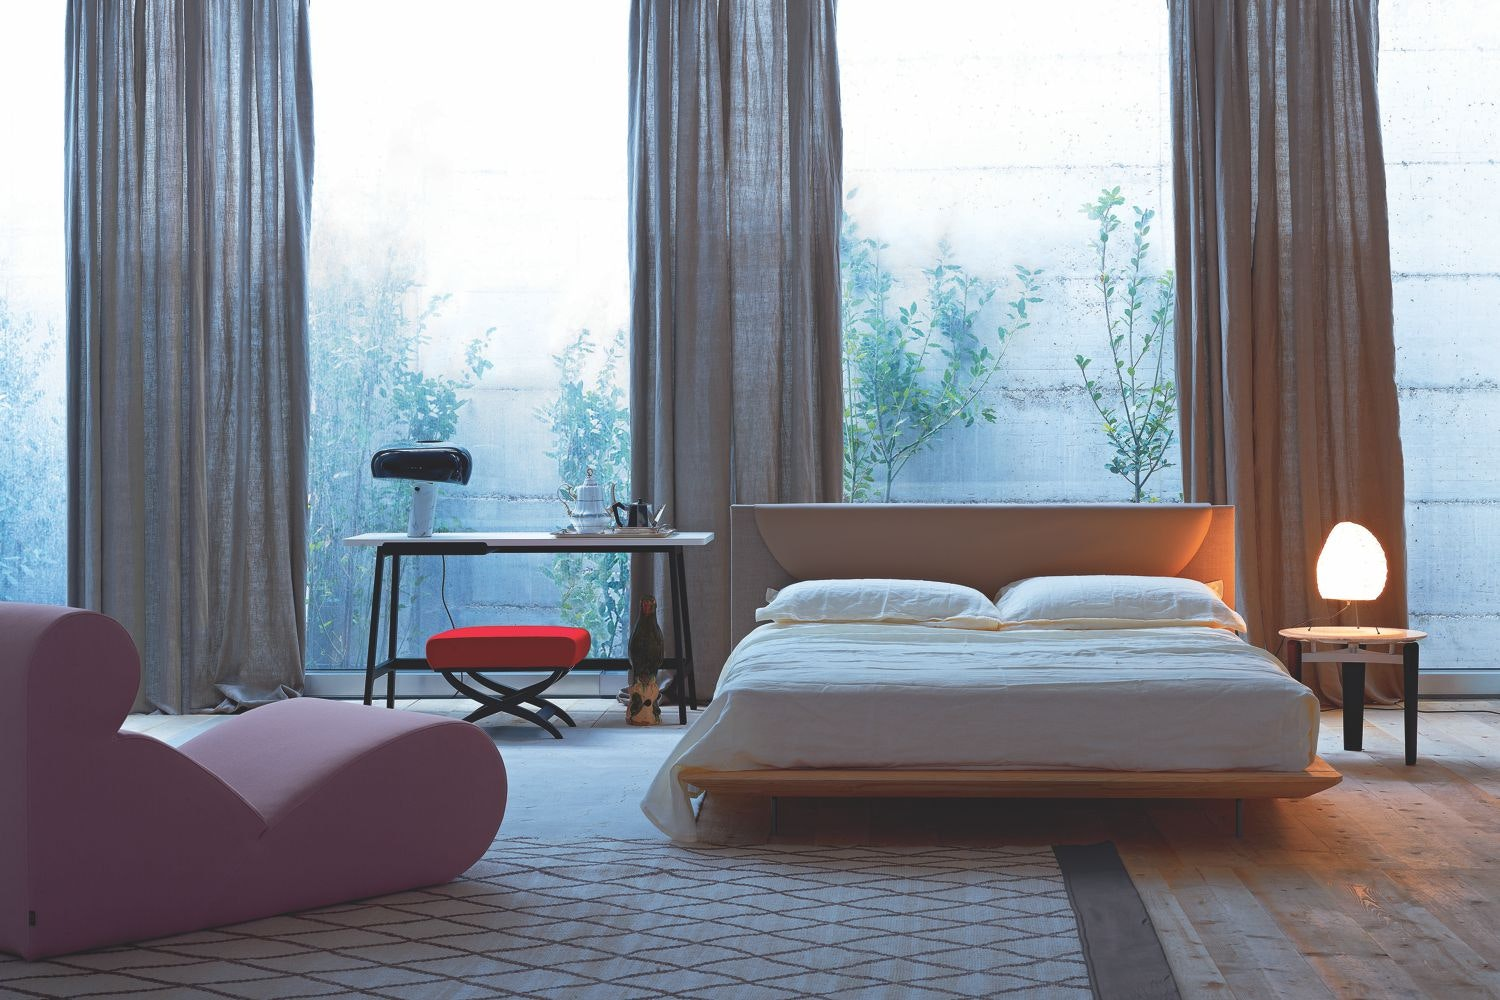 Joy Bed by Claesson Koivisto Rune for Arflex